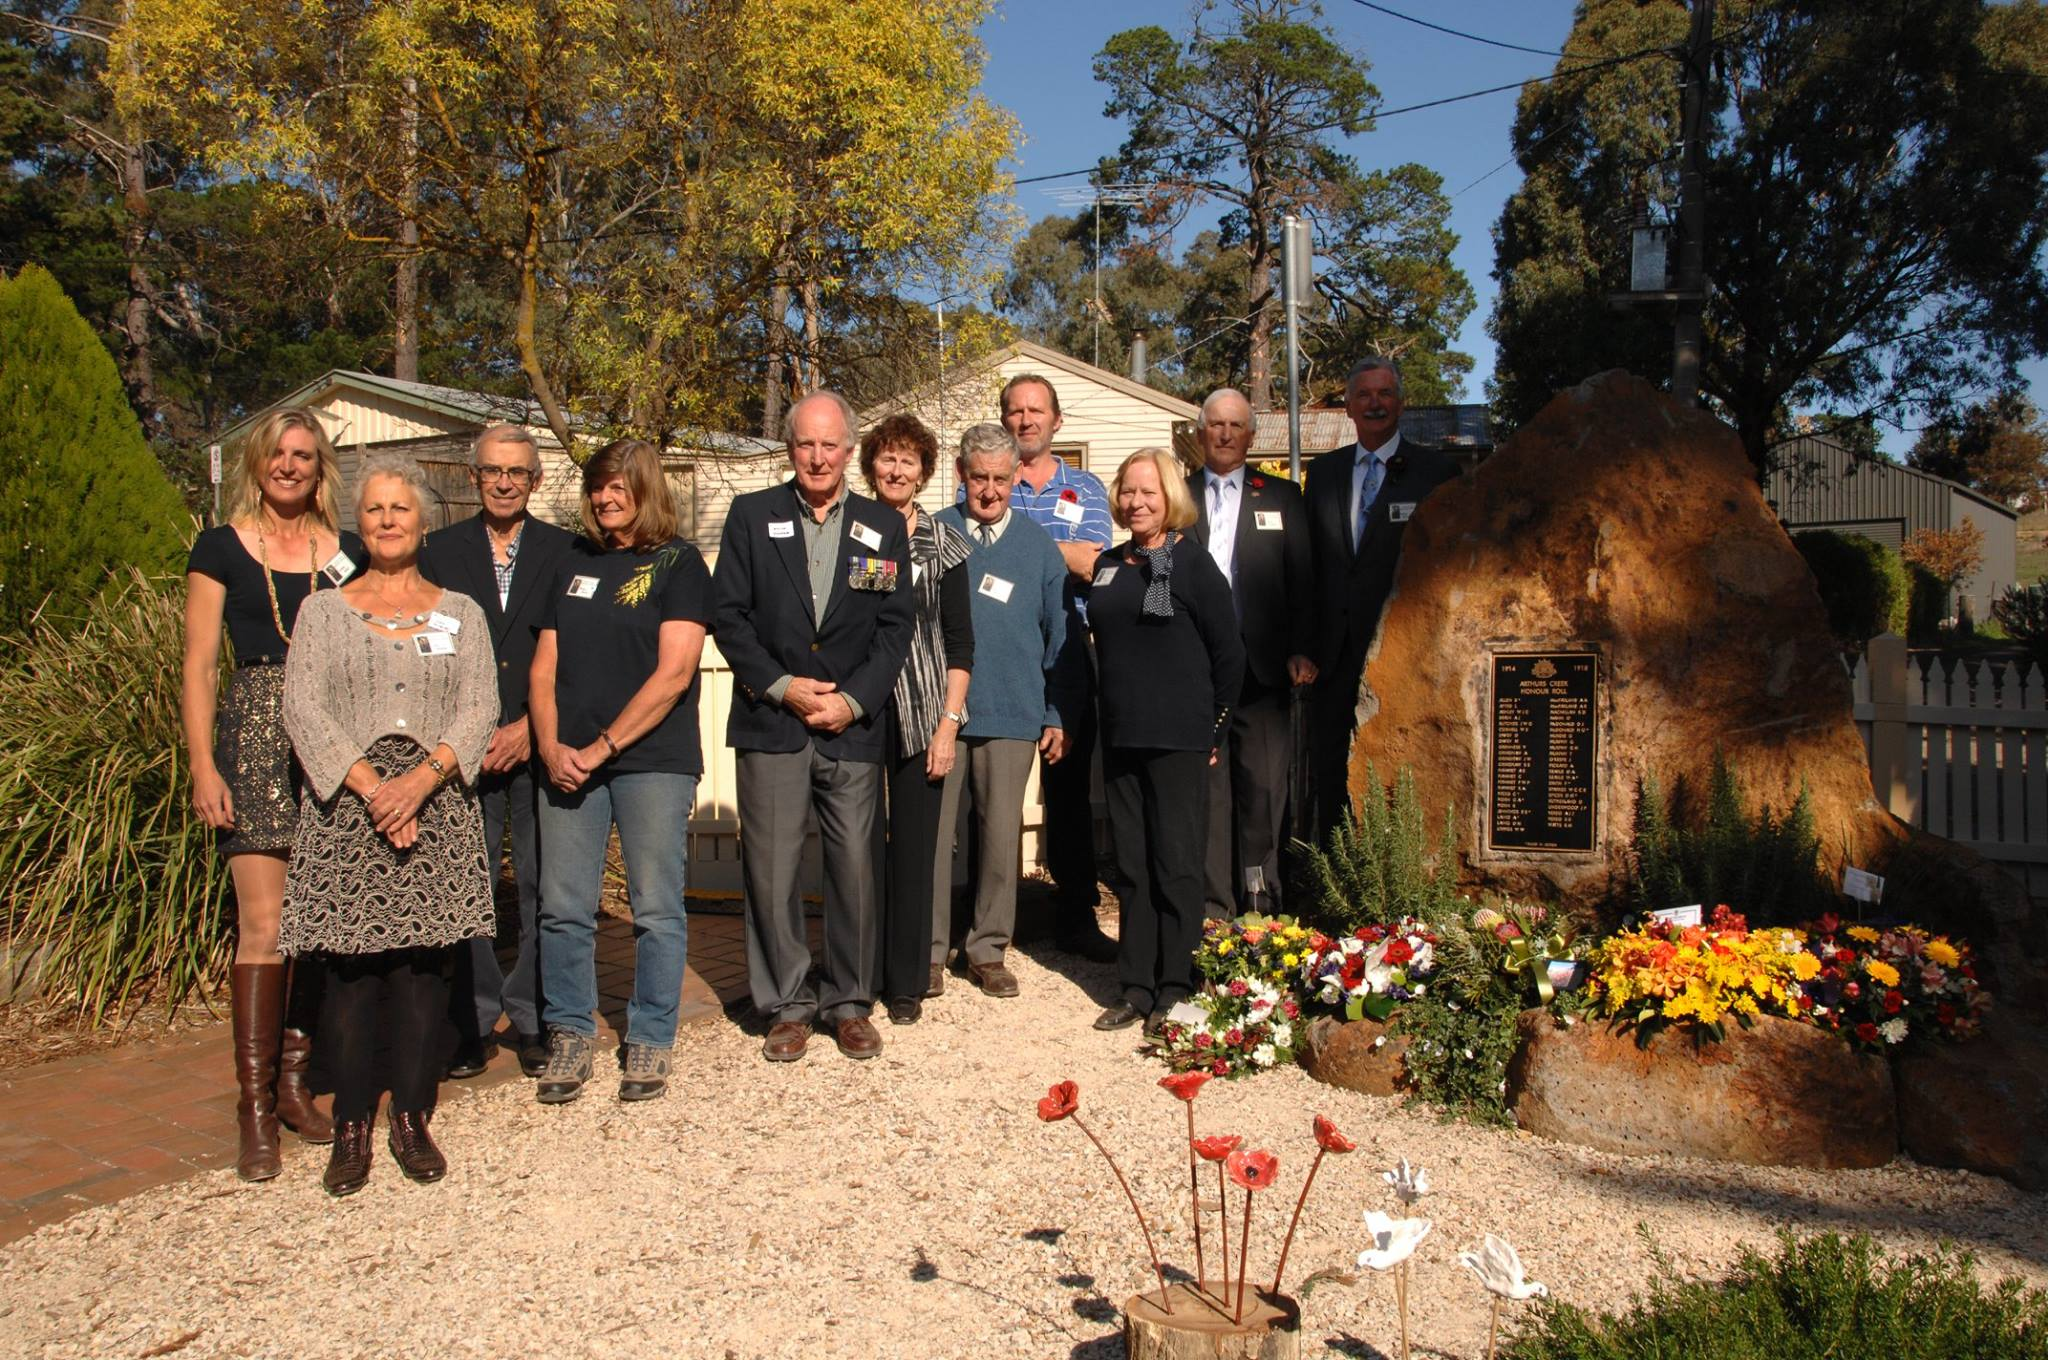 """He served on the Committee of the Arthurs Creek Mechanics Institute, pictured here at the WW1 Honour Roll and Commemorative Garden Opening, Sunday 17th April 2016 (fifth from the left).  Collette Apted (pictured far left) said """"we spent a lot of time together working on all those historical projects and it was wonderful.  He will be missed by so many people"""""""